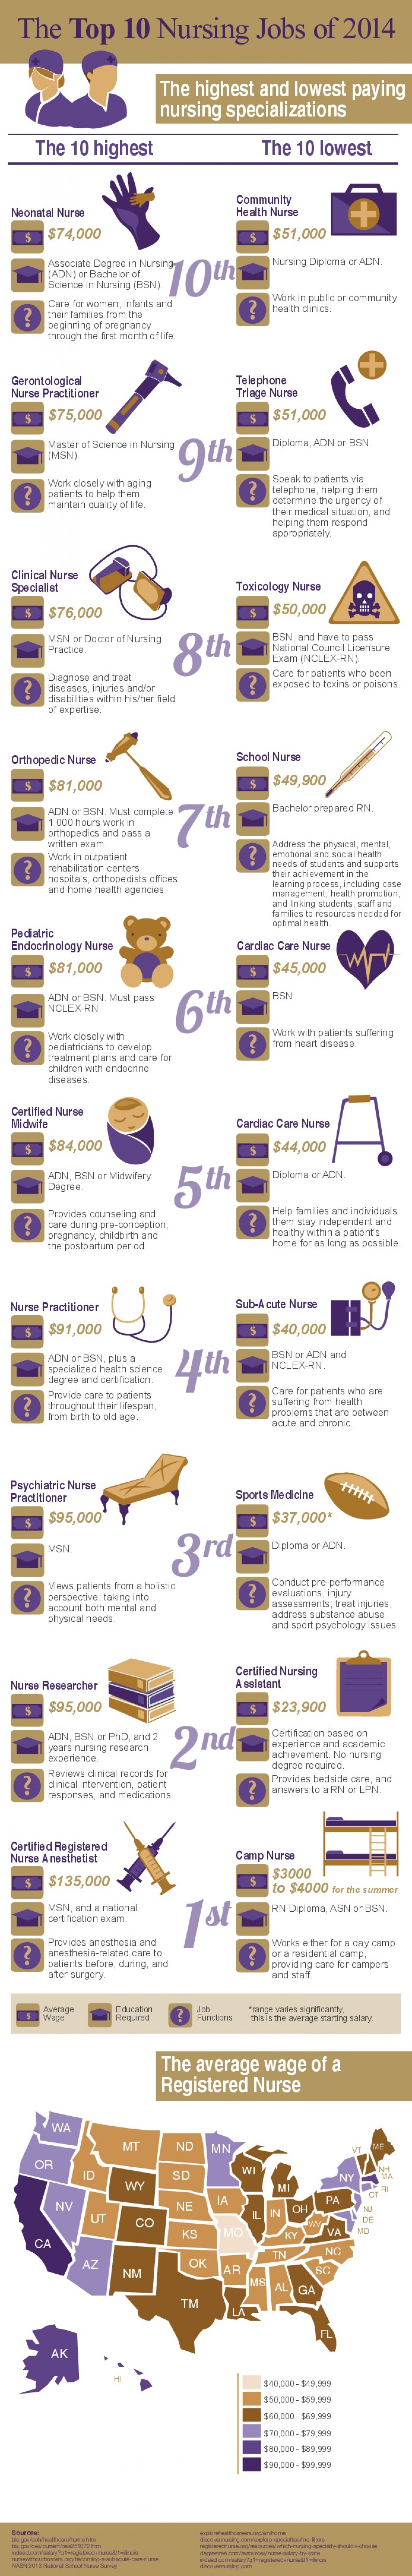 The Top 10 Nursing Jobs of 2014 Infographic